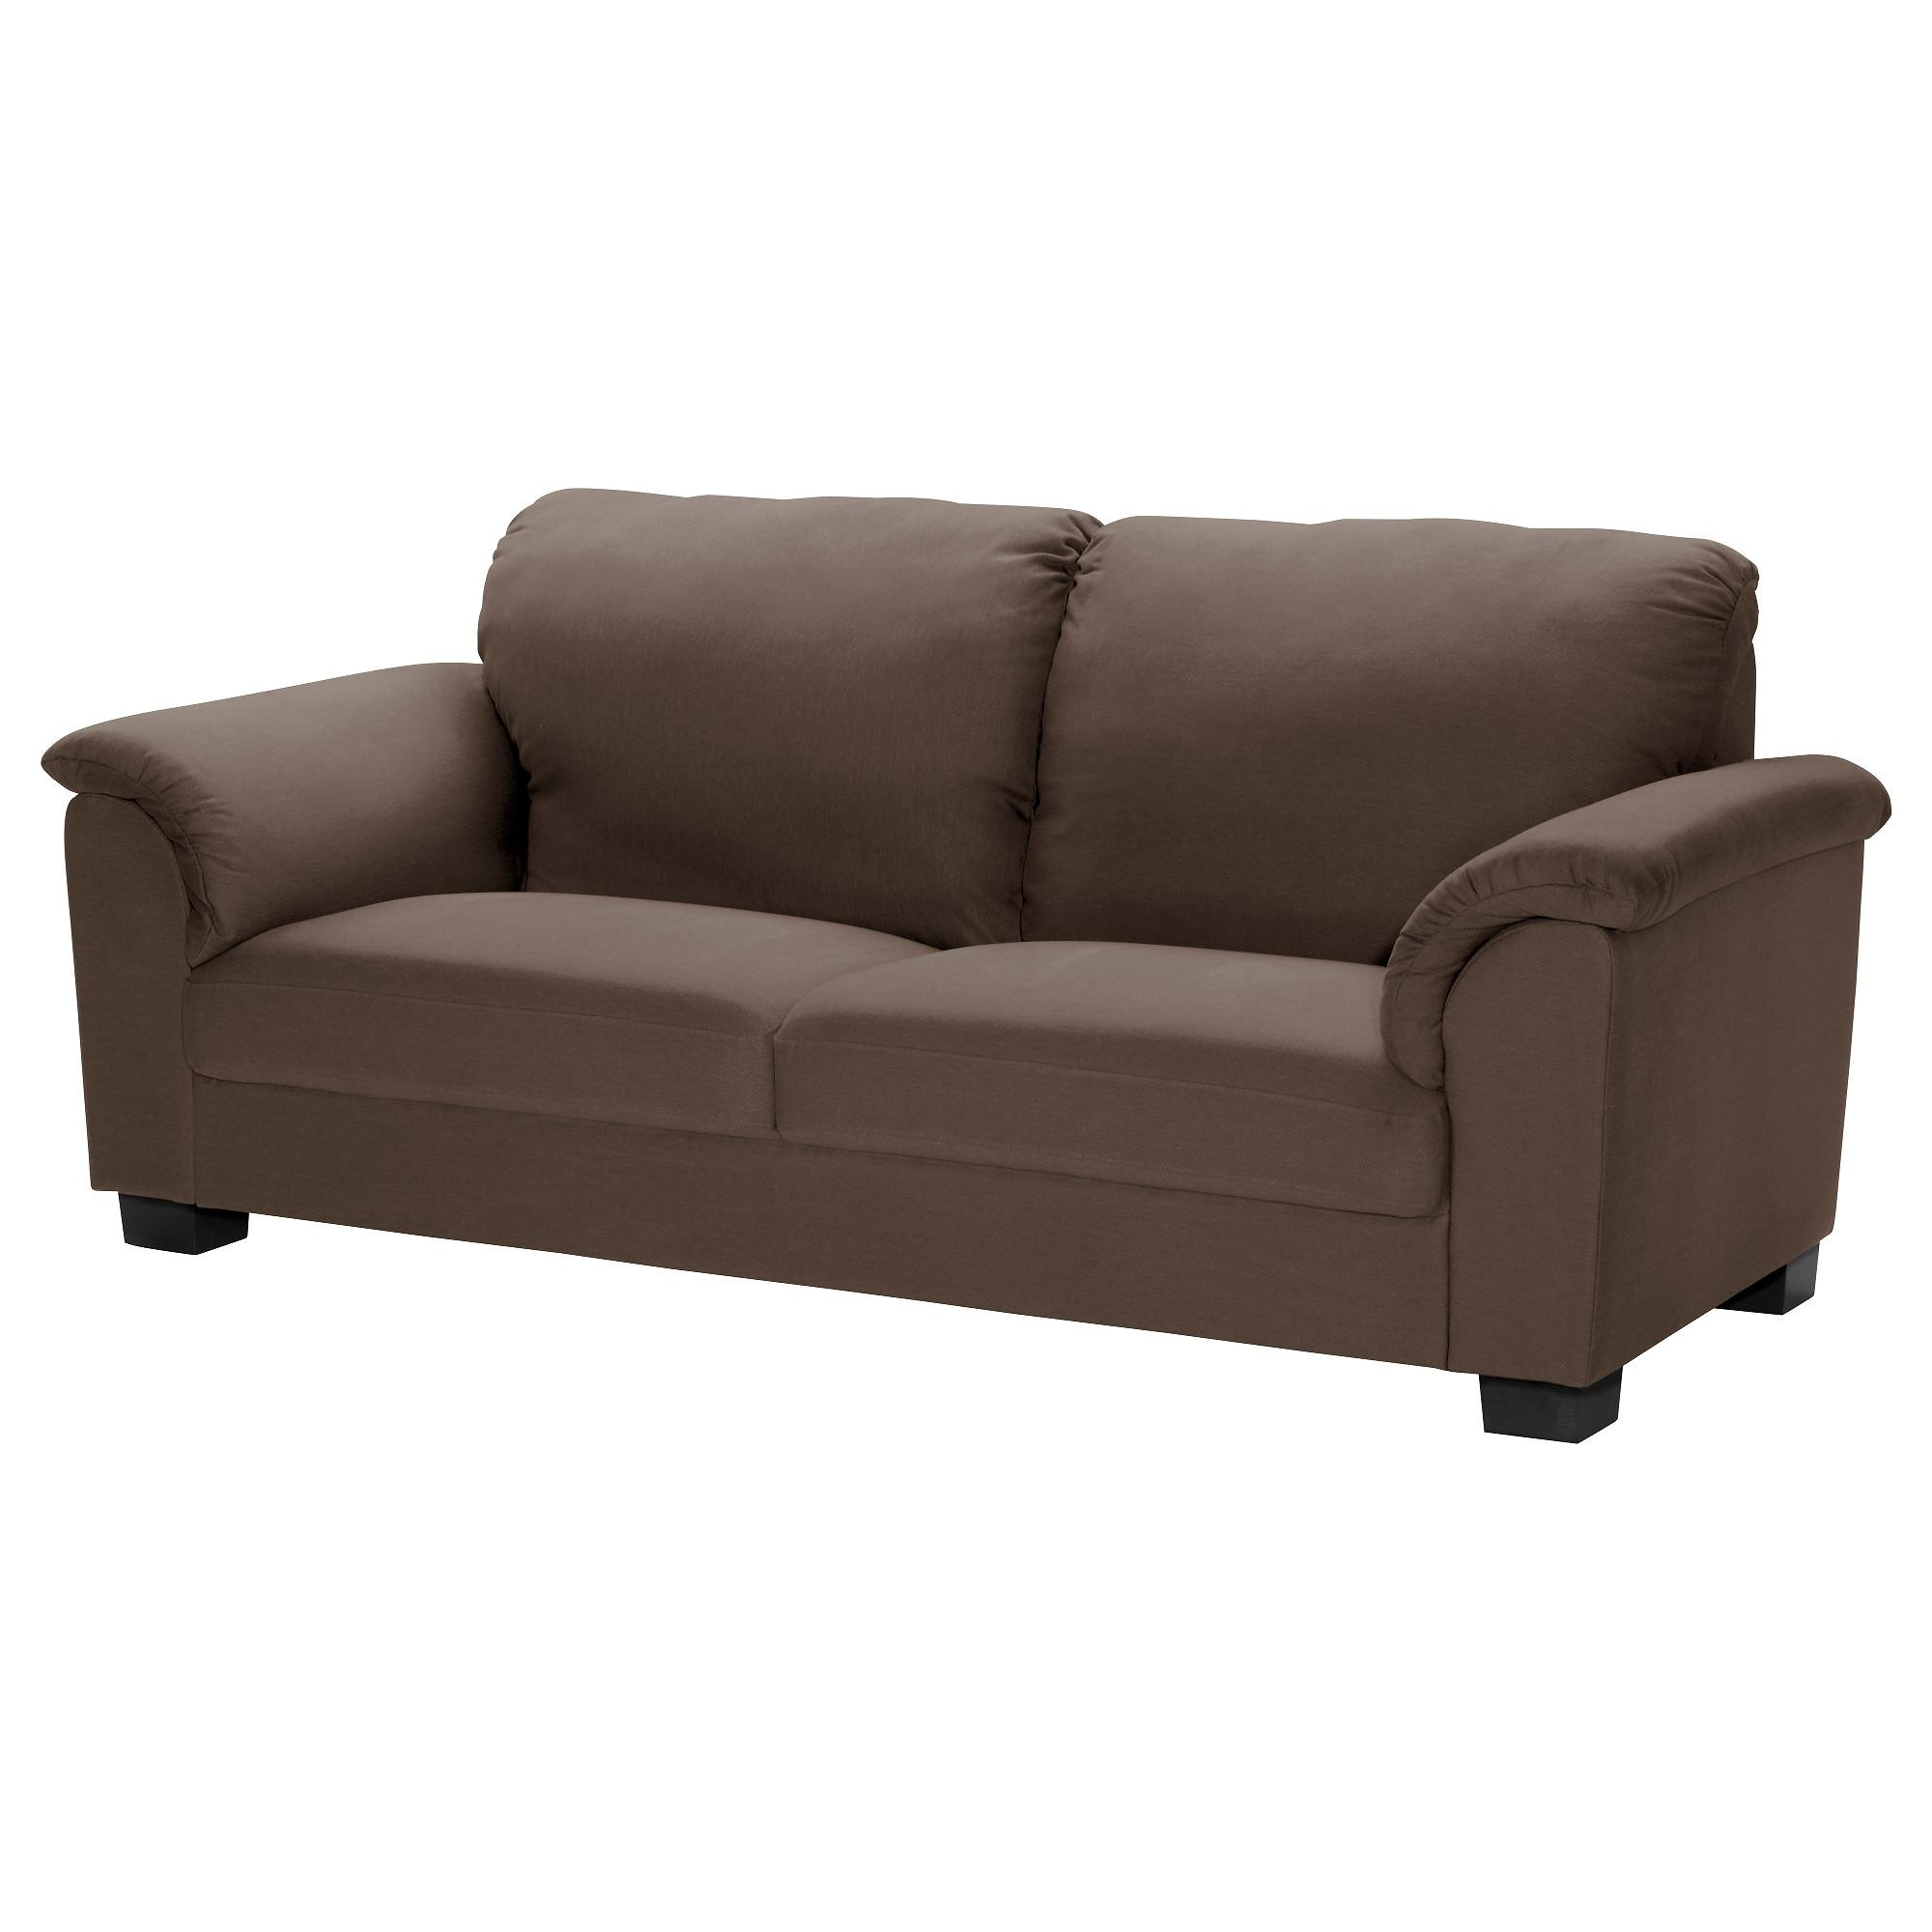 Sofas & Armchairs | Ikea Regarding Single Seat Sofa Chairs (Image 17 of 20)